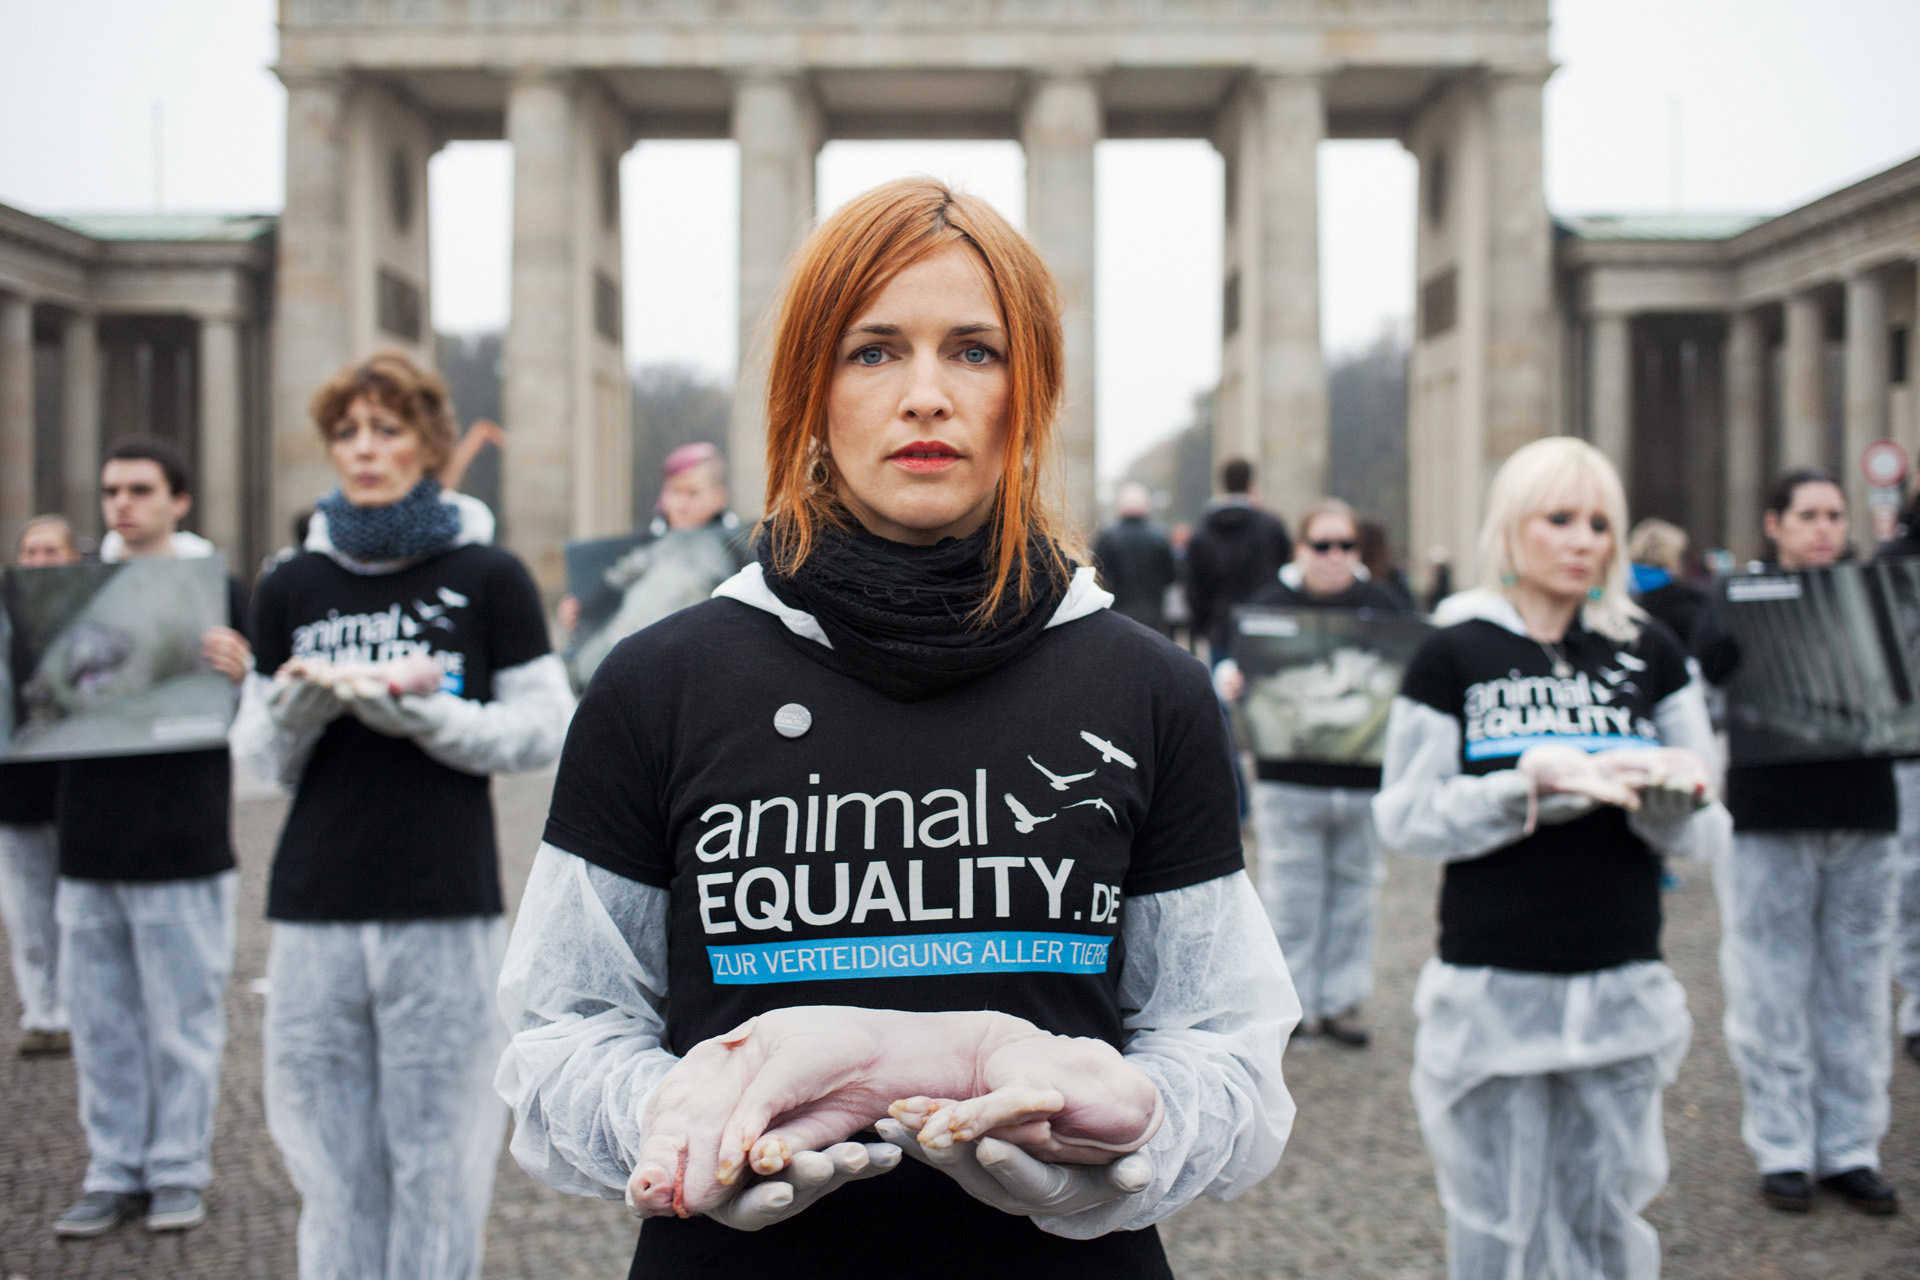 timo-stammberger-photography-fotografie-animal-rights-tierrechte-activism-aktivismus-mitgefuehl-vegan-compassion